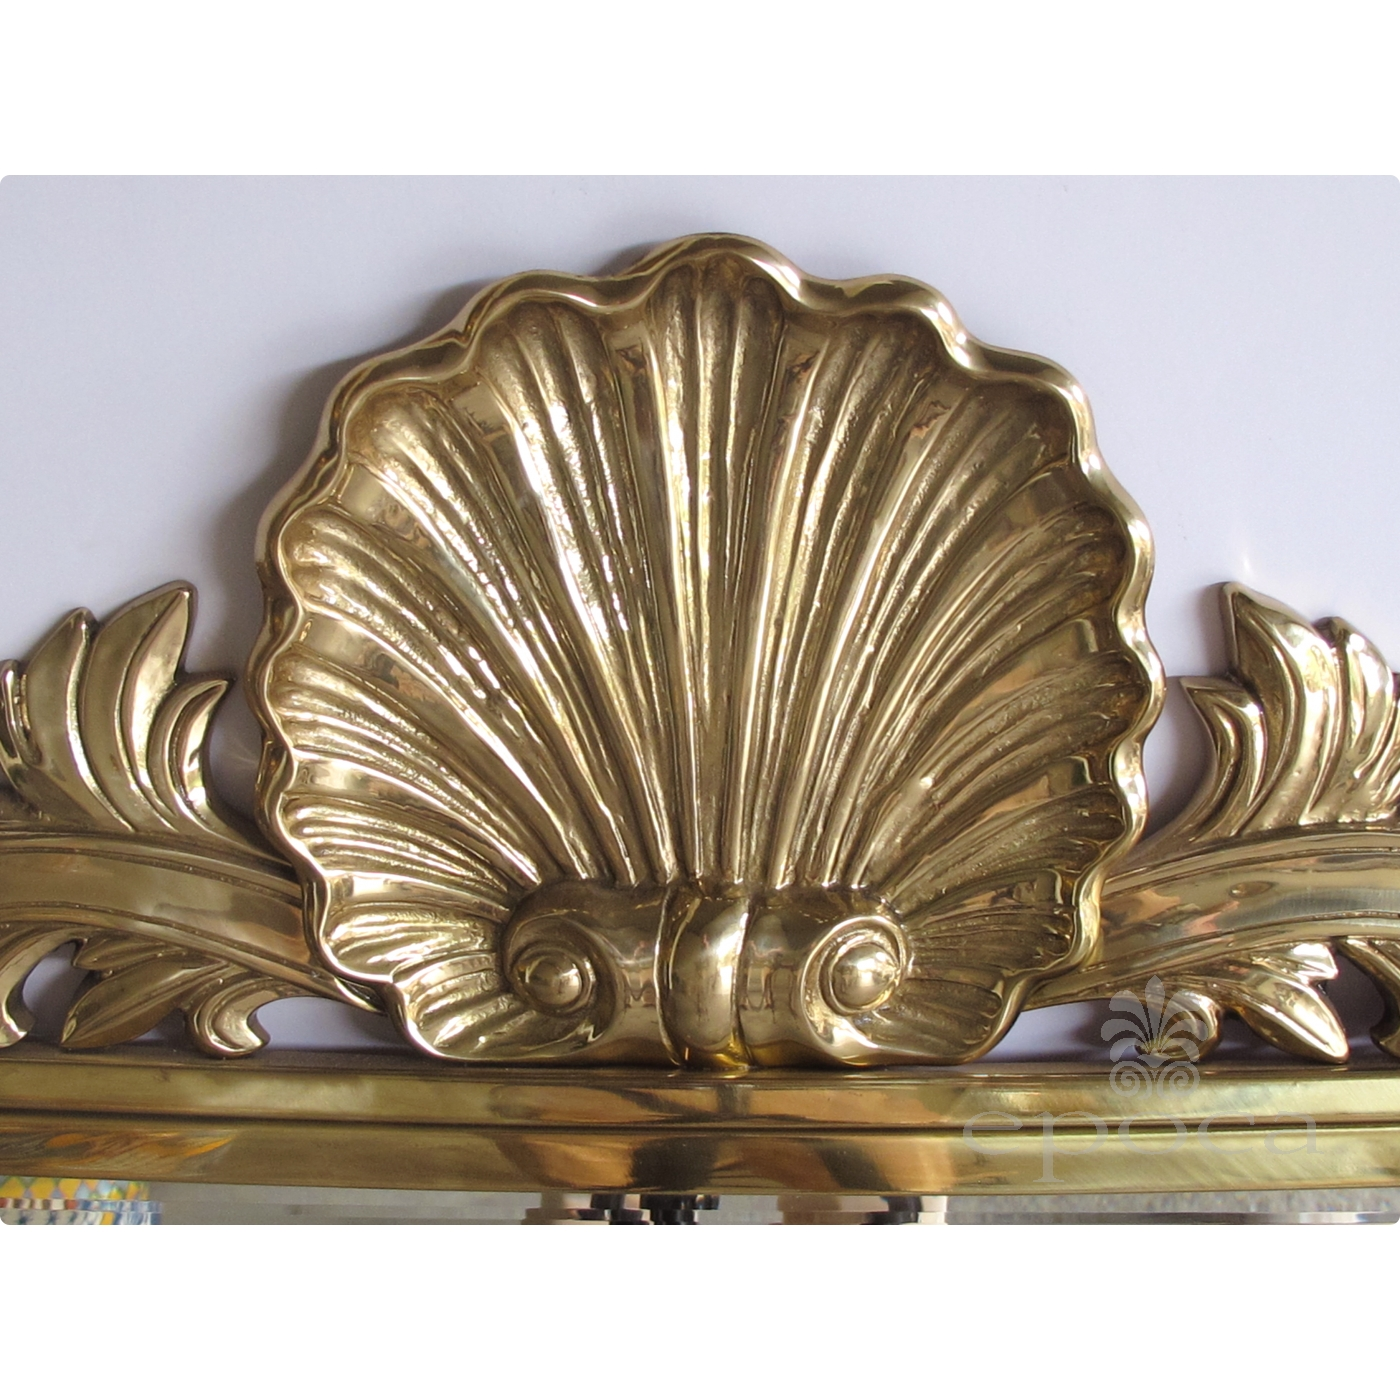 A Good Quality Italian Hollywood Regency Solid Brass Mirror